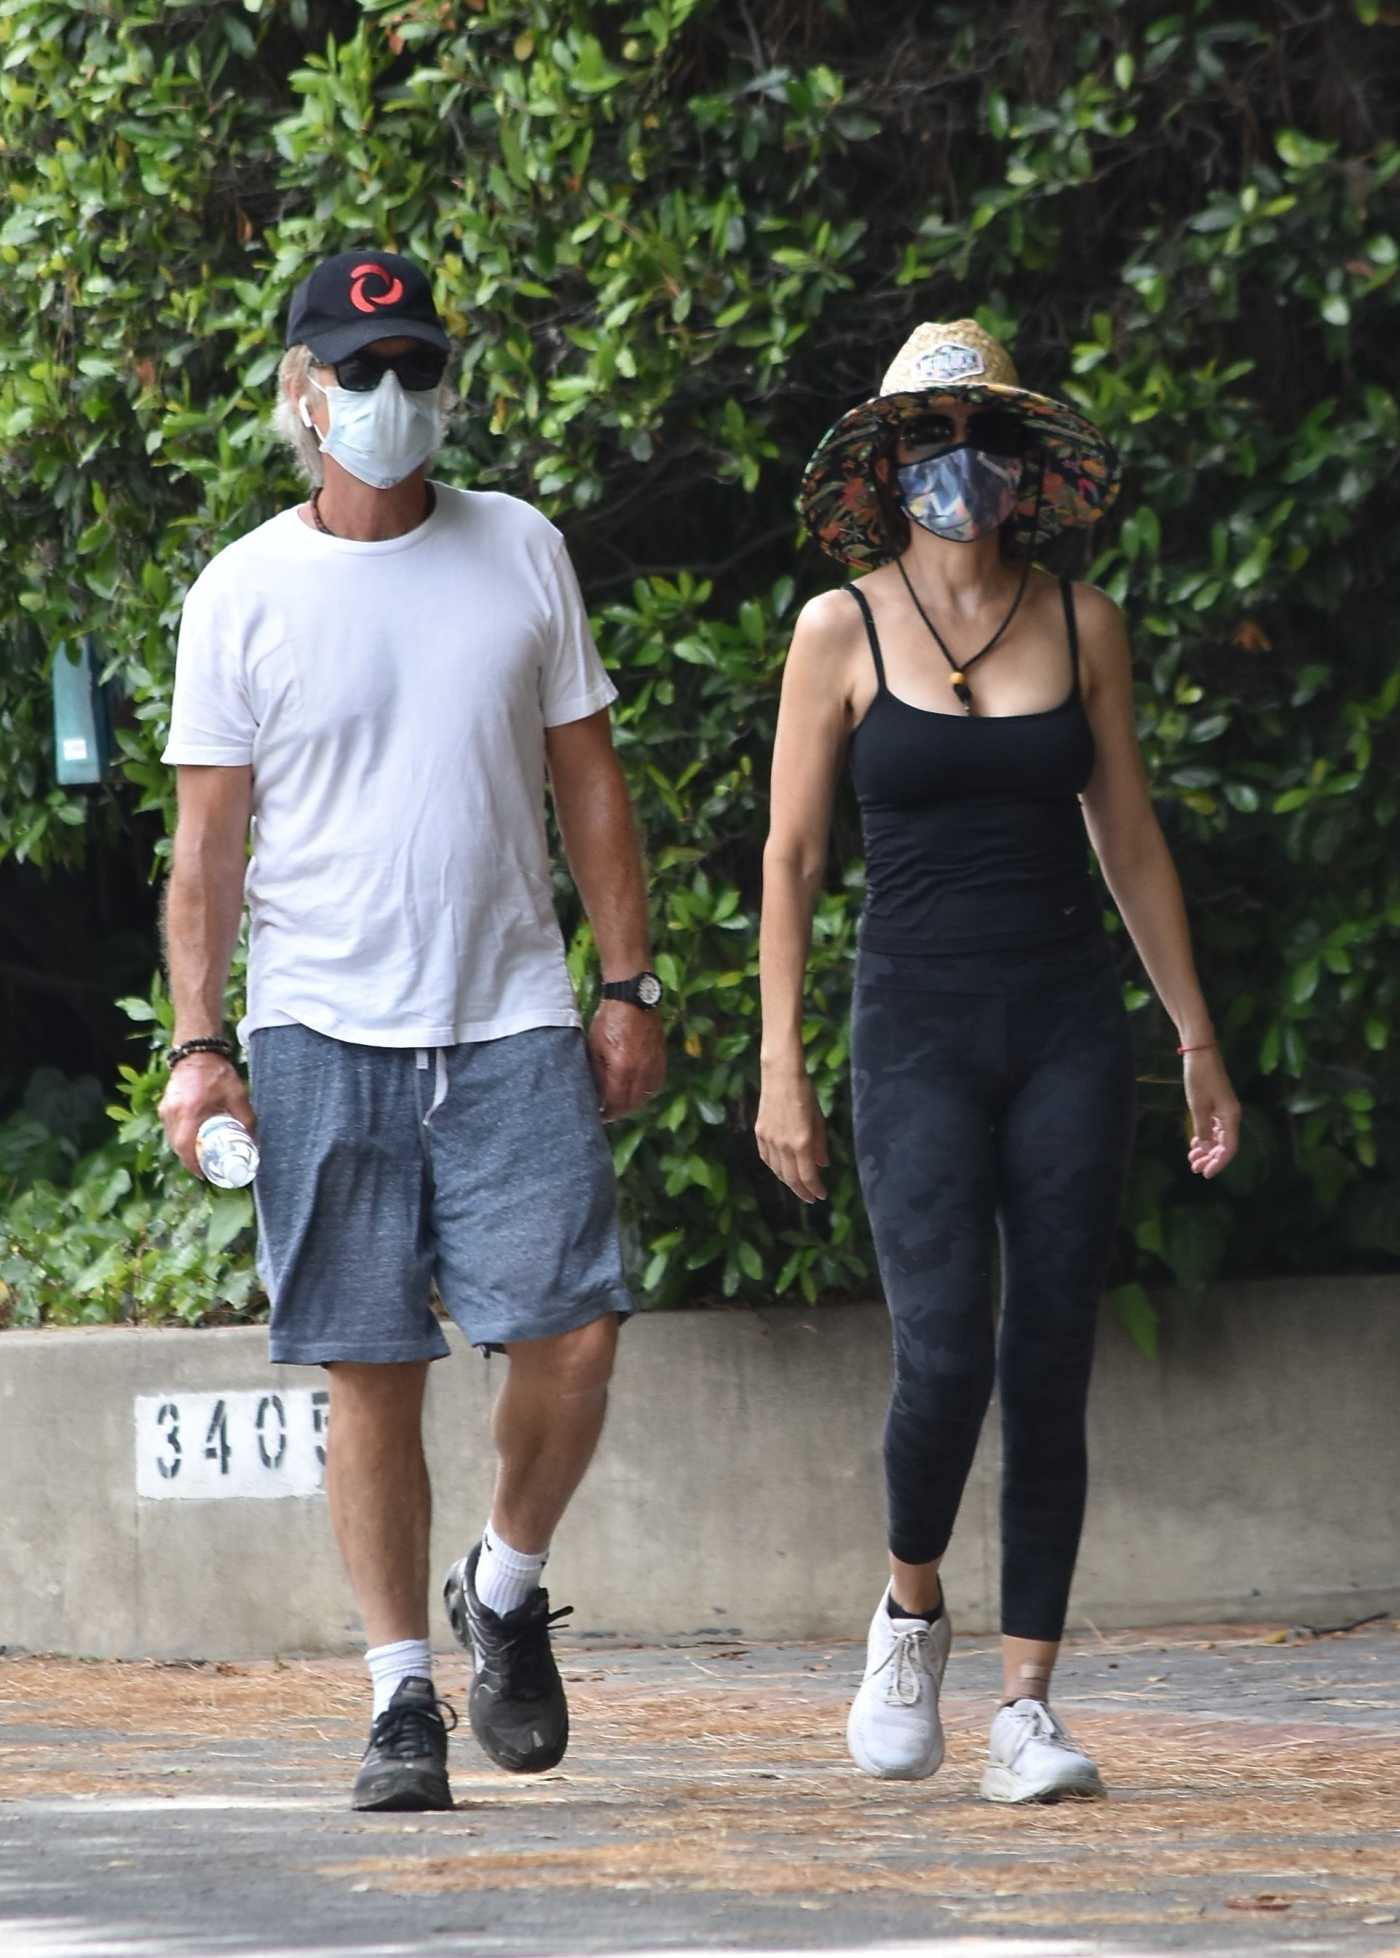 Lisa Rinna in a Protective Mask Was Seen Out with Harry Hamlin in Studio City 06/02/2020